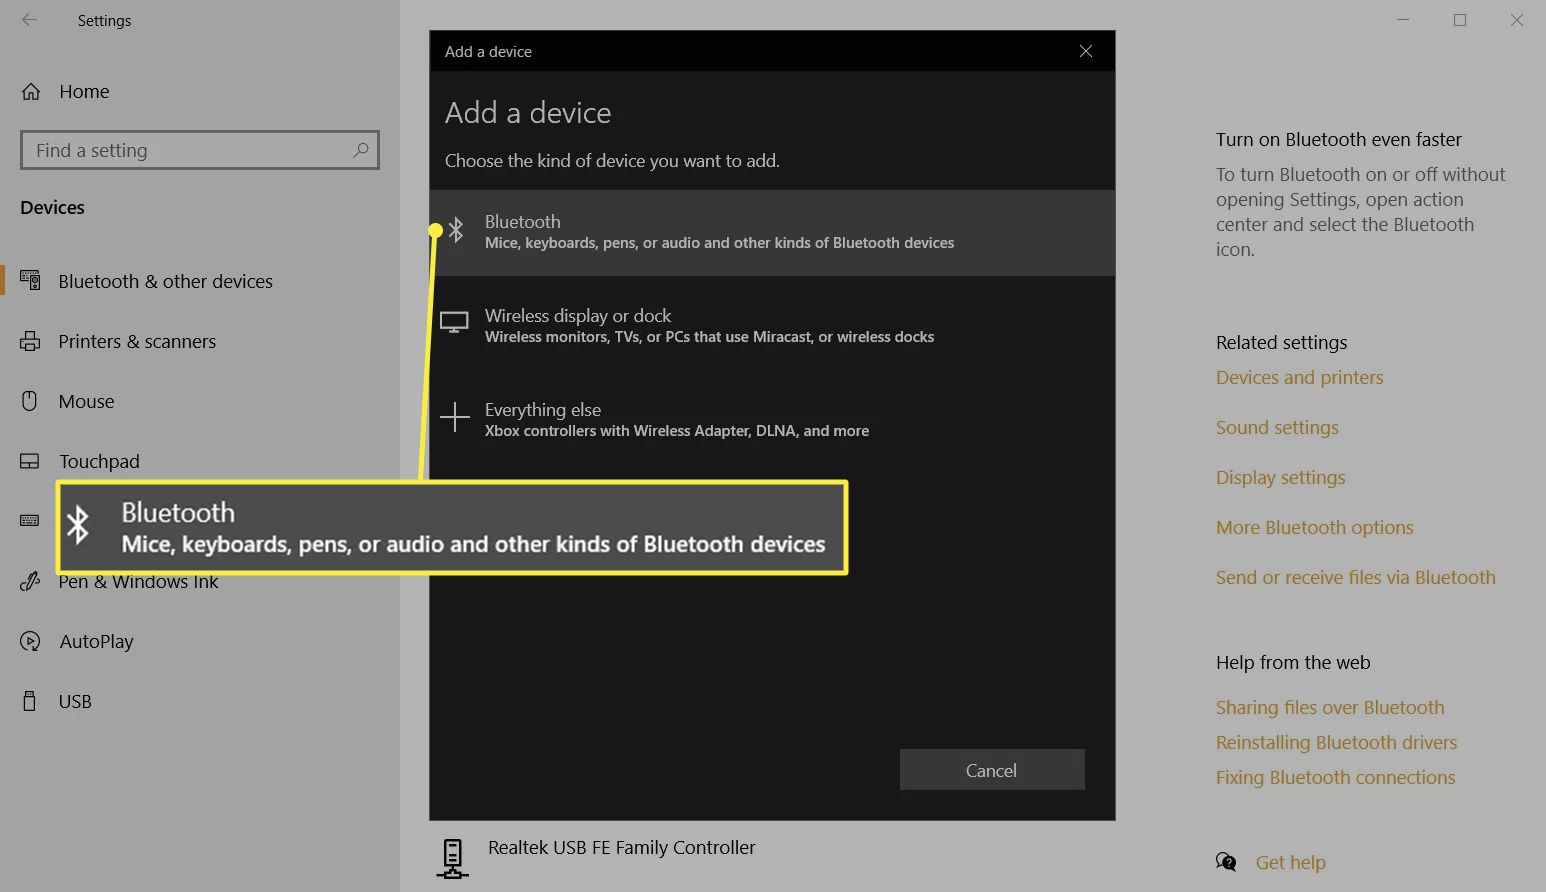 Add a device pop-up in Windows 10 Settings to connect Bluetooth mice